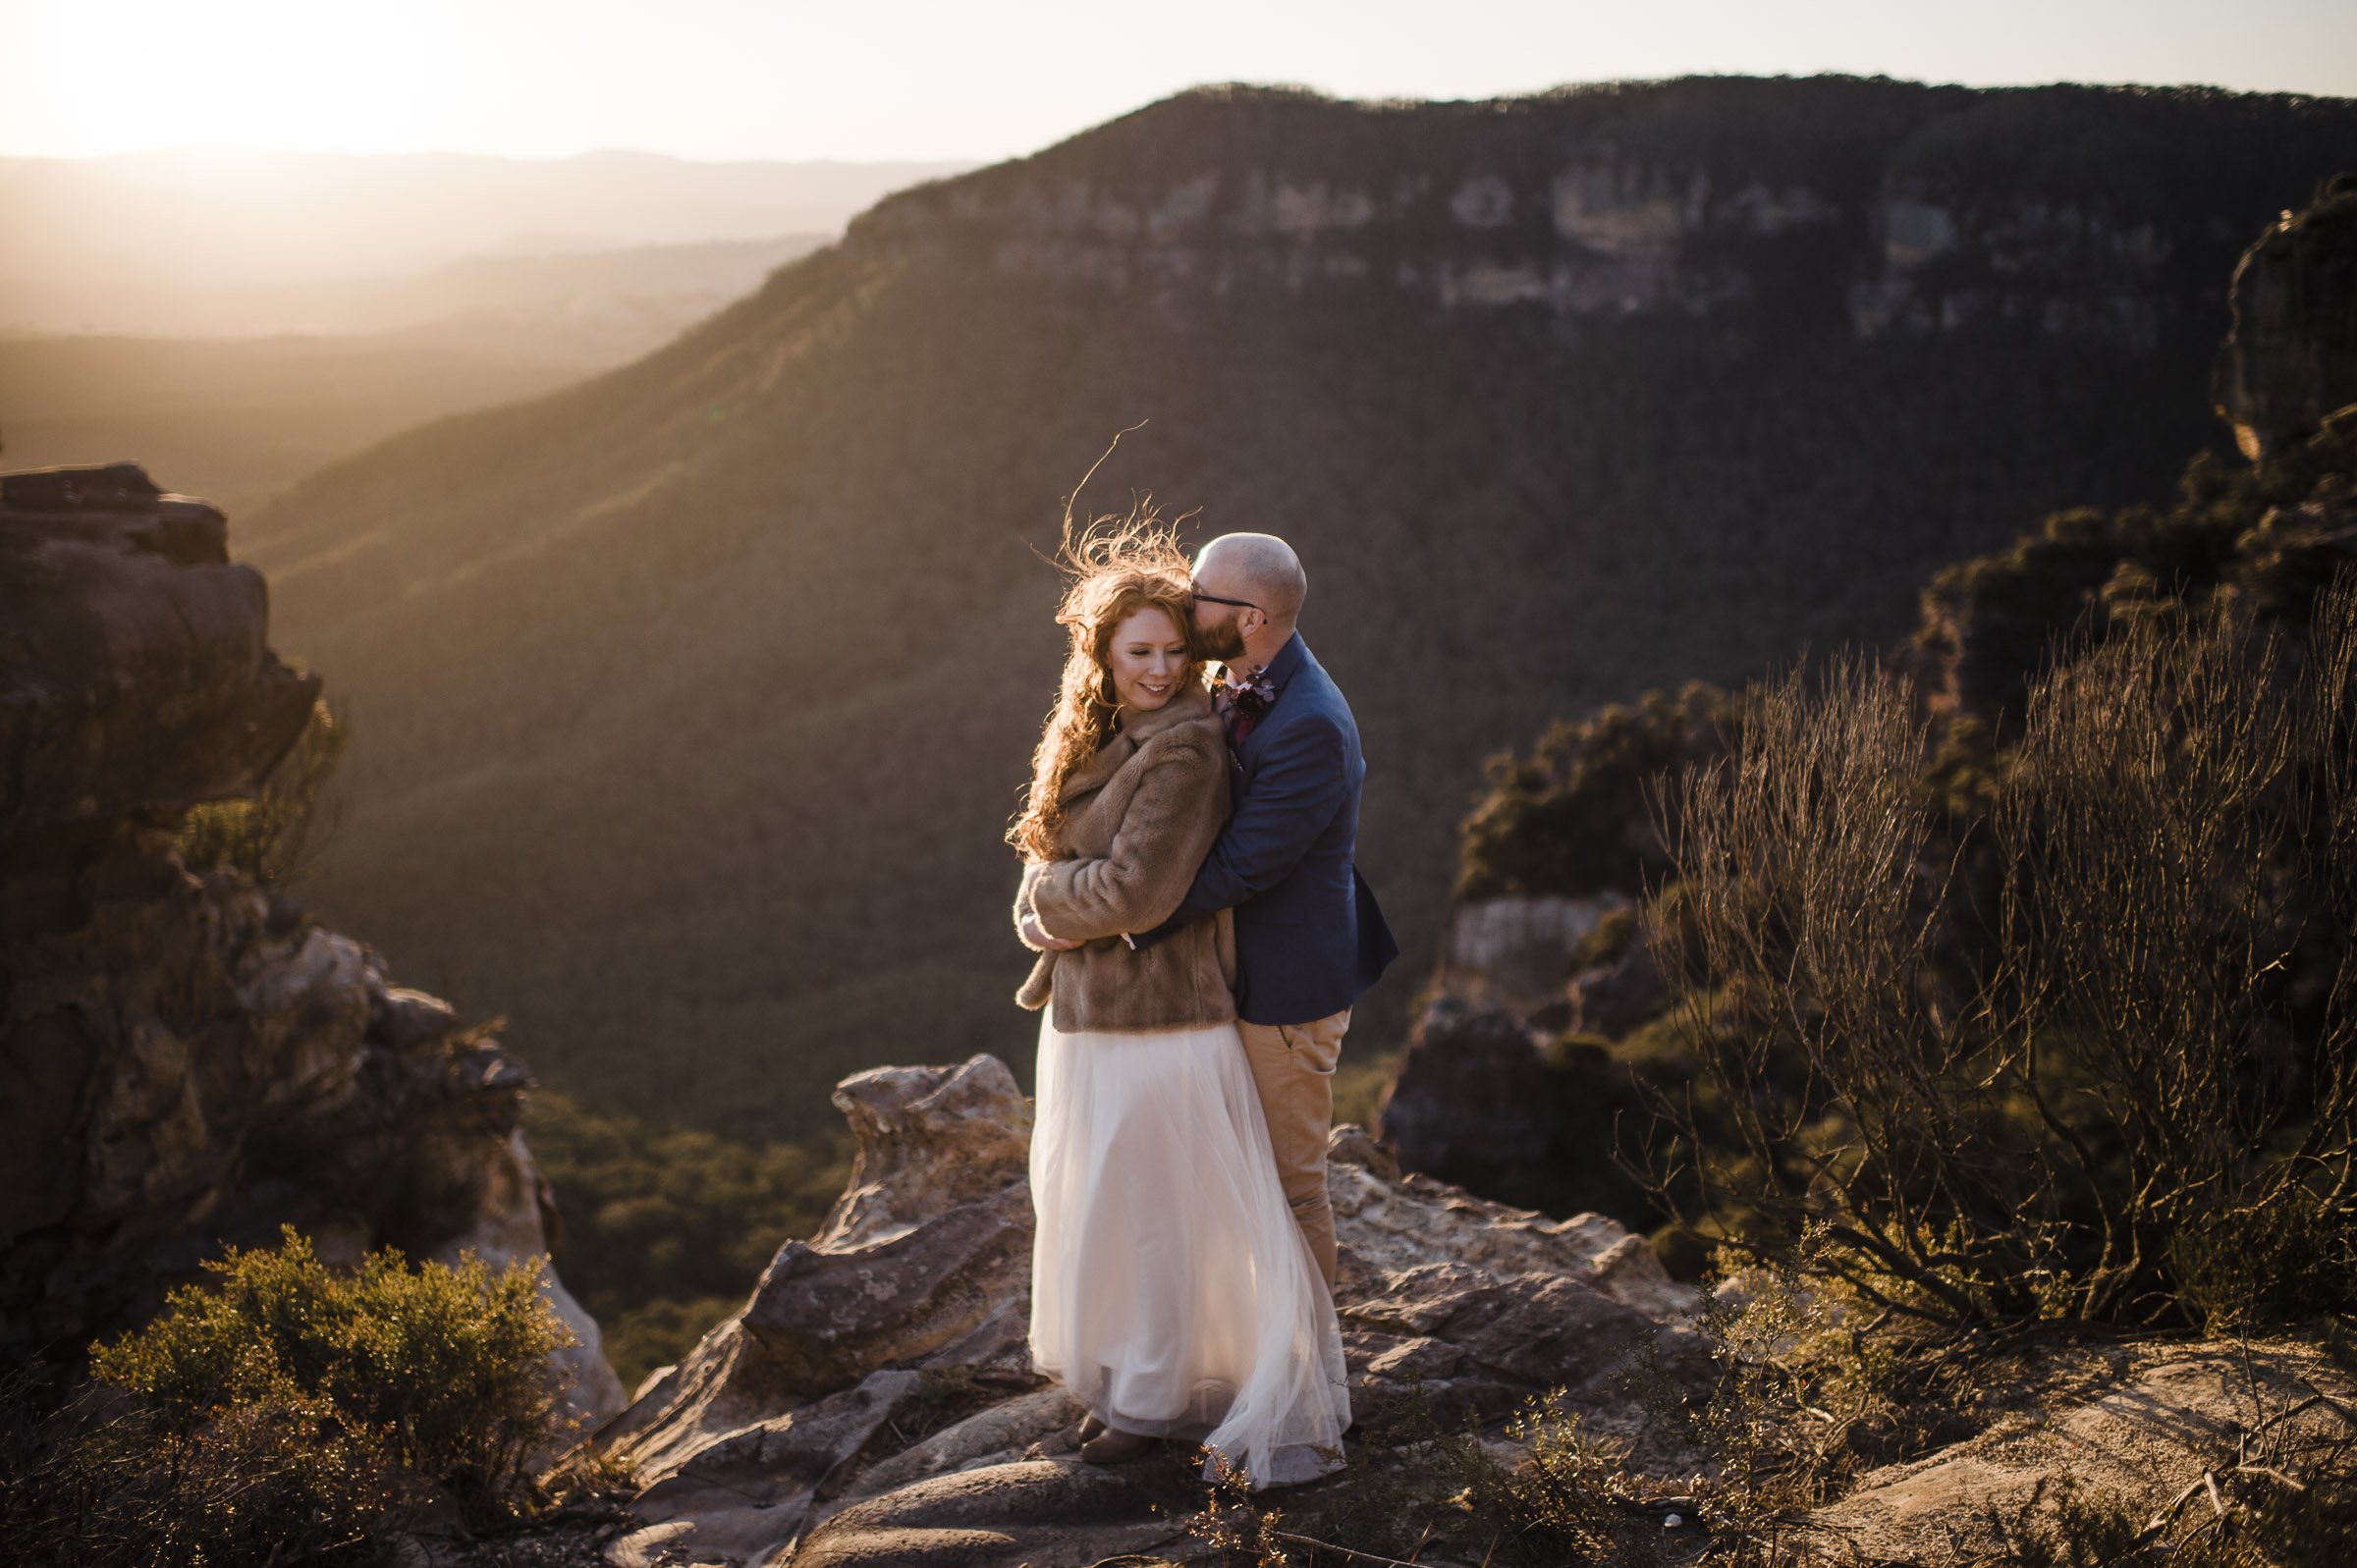 Caitlin_Ben_Anteloping_Blue_Mountains_Elopement_Blog-92.jpg